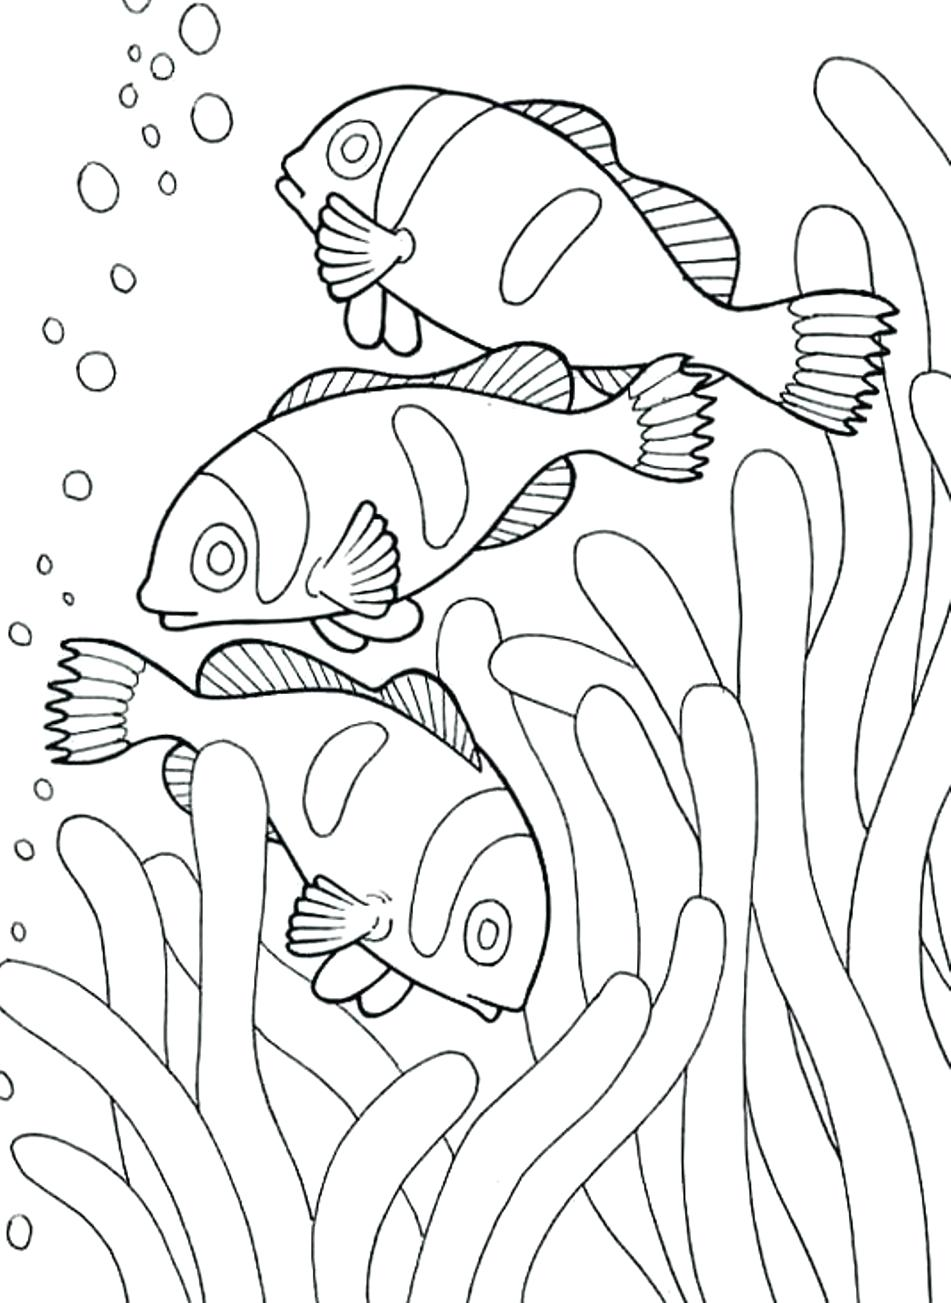 Clownfish Drawing at GetDrawings.com | Free for personal use ...